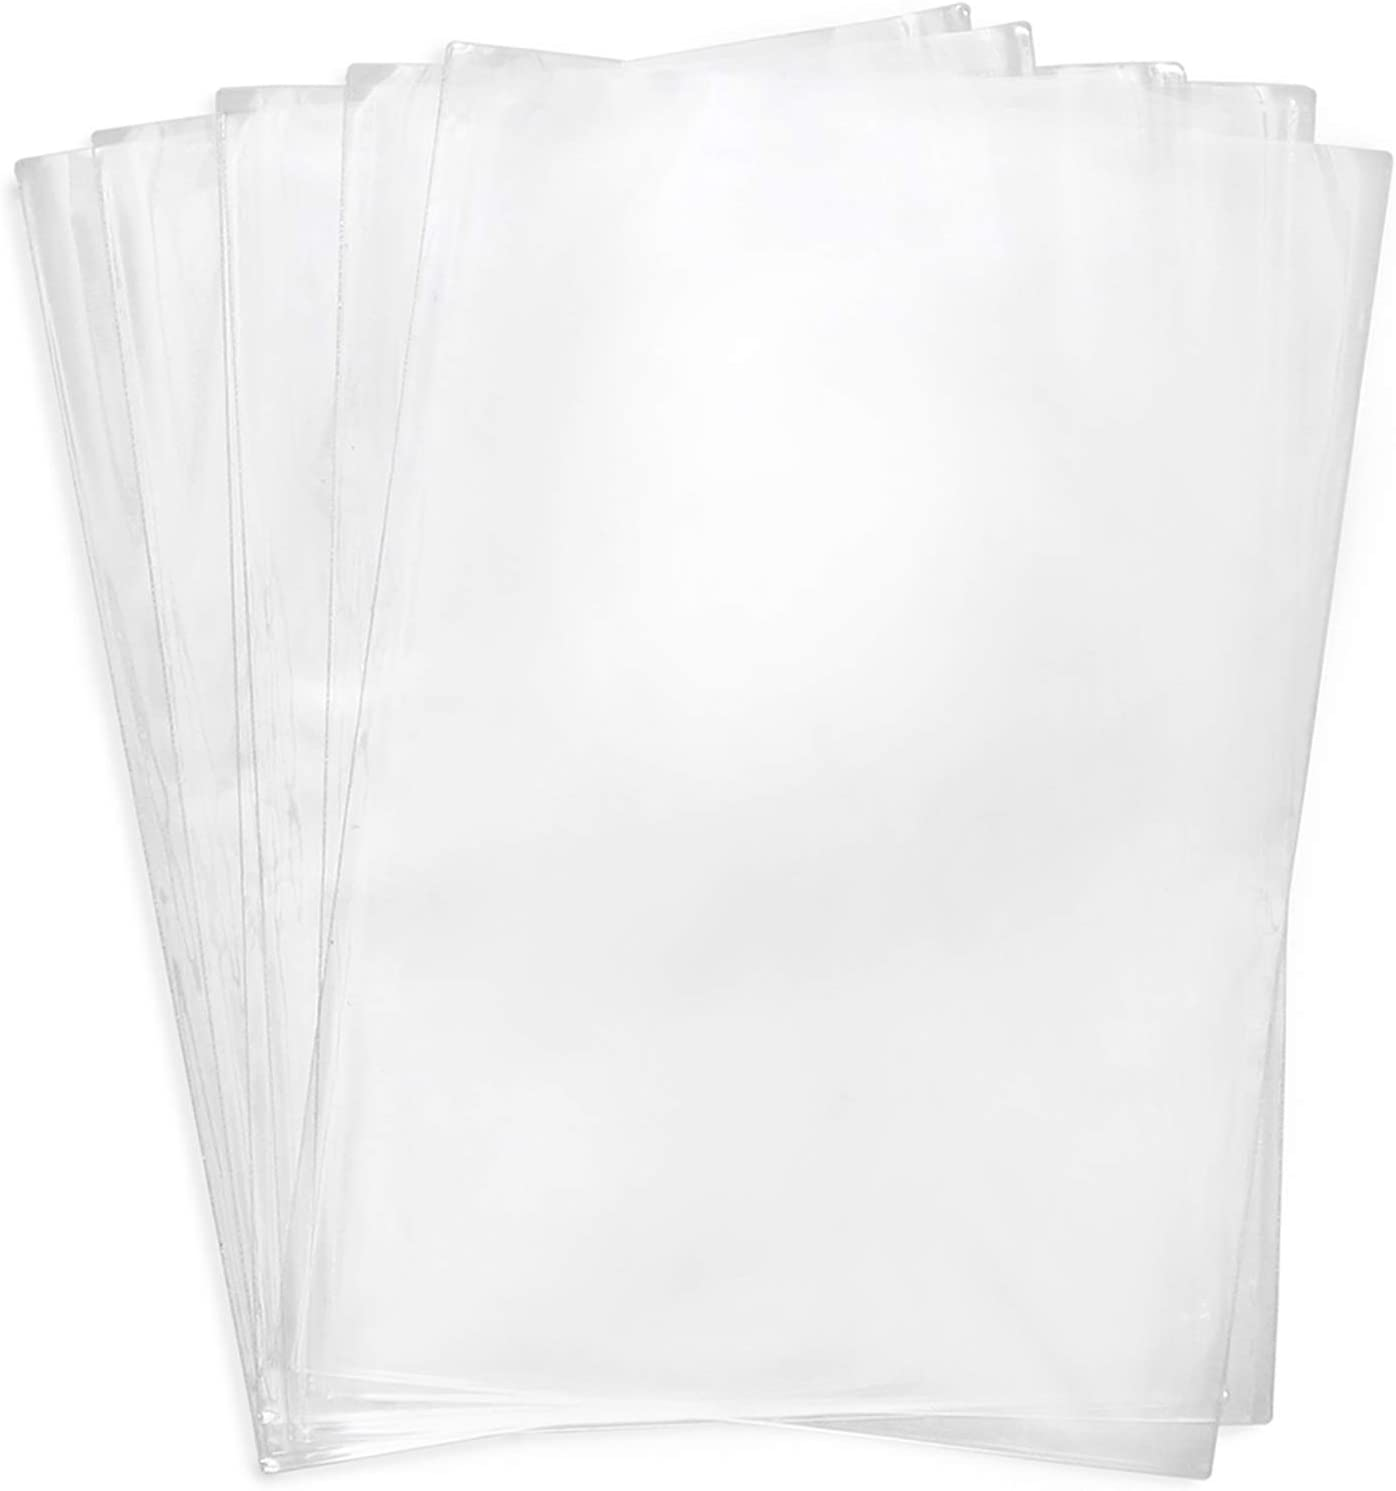 Shrink Wrap Bags,10x14 Inches Clear Heat Seal Shrink Bags for Gifts, Packaging, Homemade DIY Projects,Soap,Book,Bath Bombs, Film DVD/CD, Candles,Small Bottle,100 Pack